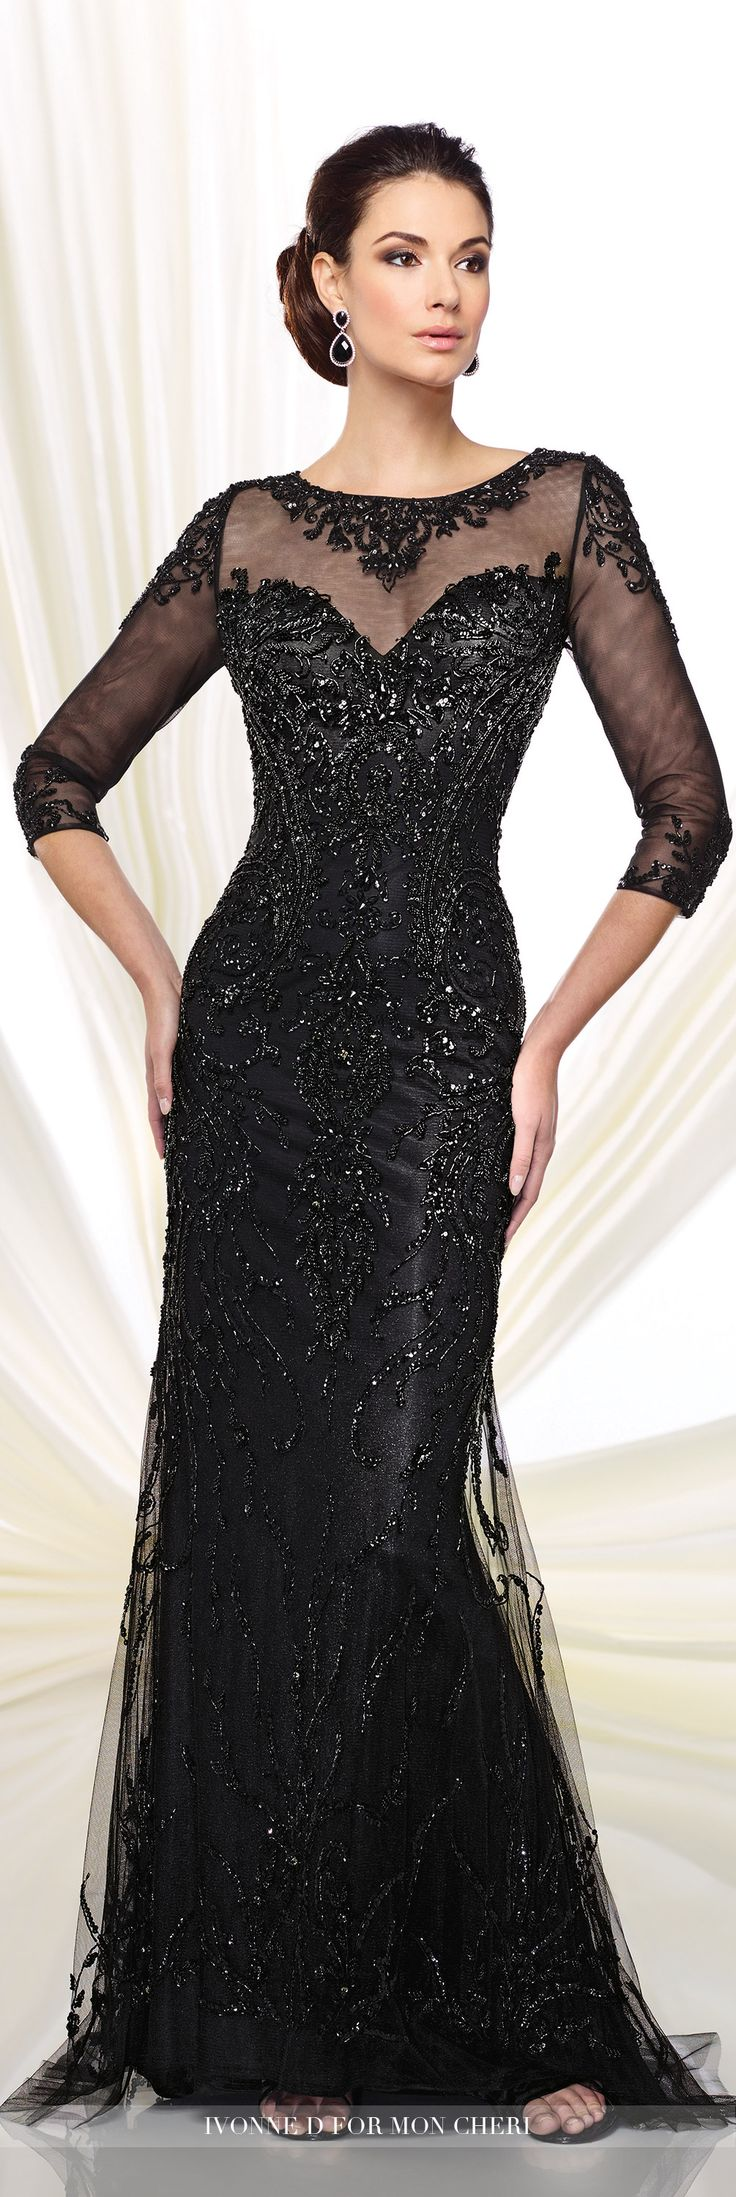 Formal Evening Gowns by Mon Cheri - Fall 2016 - Style No. 216D42 - black evening gown with illusion sleeves